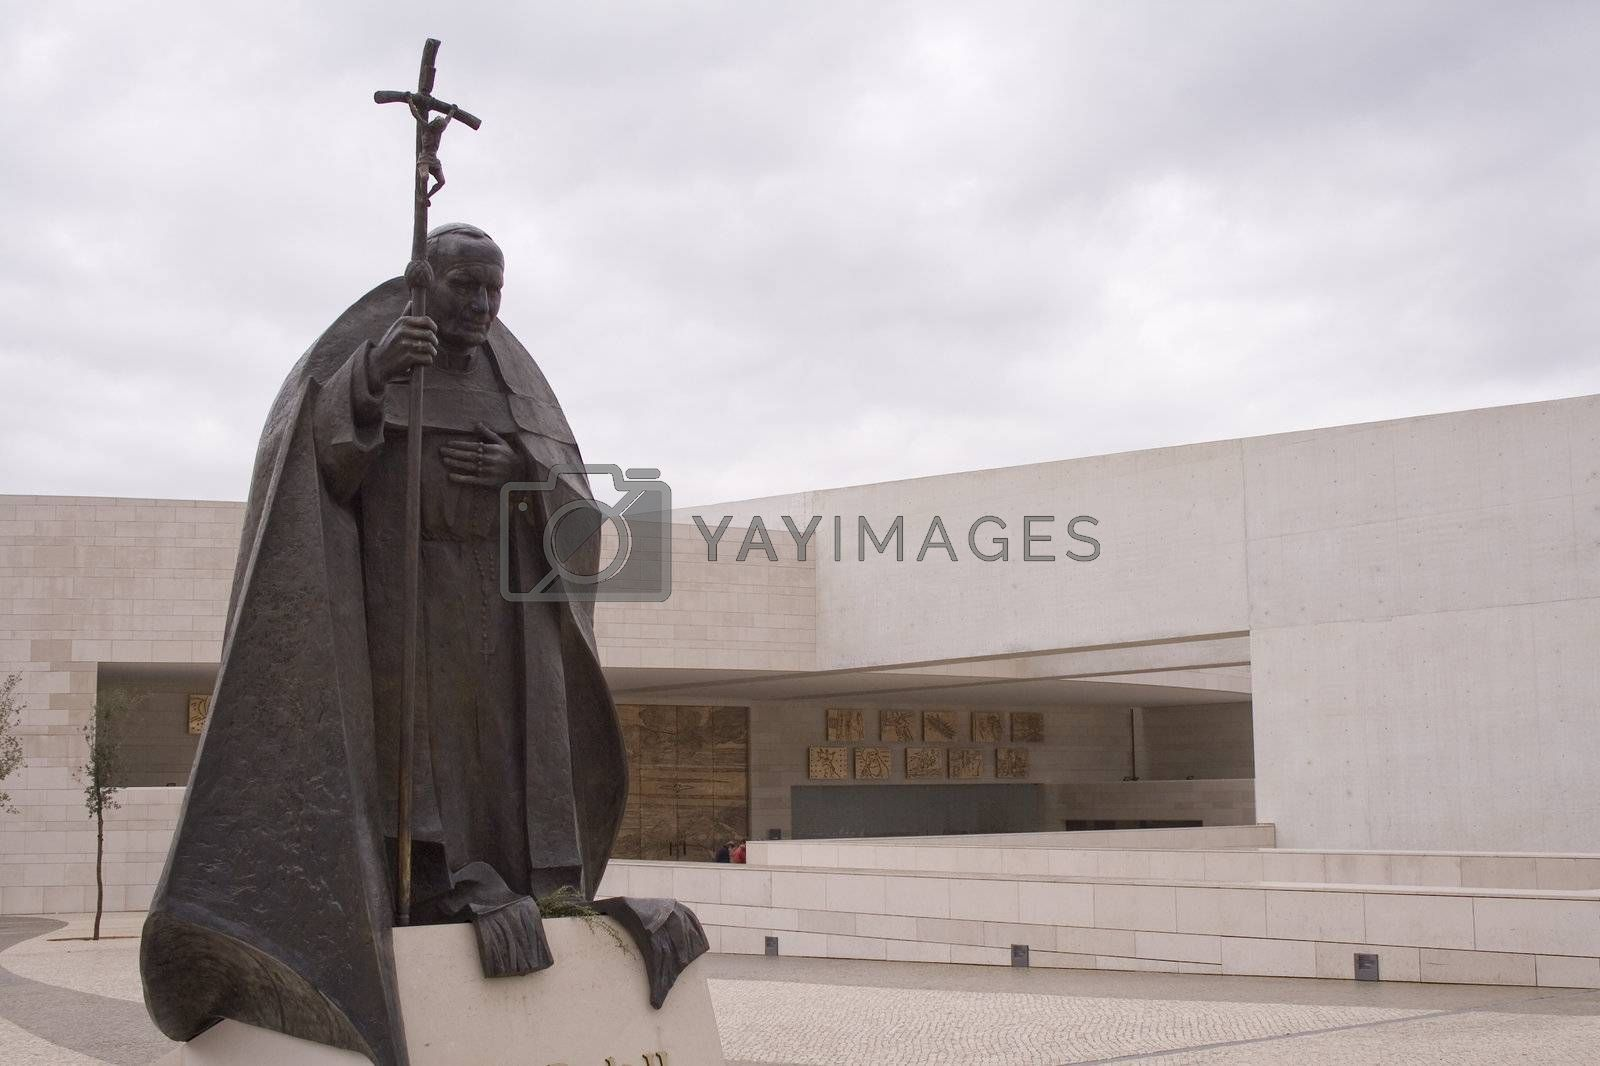 New cathedral in Fatima Portugal by PauloResende